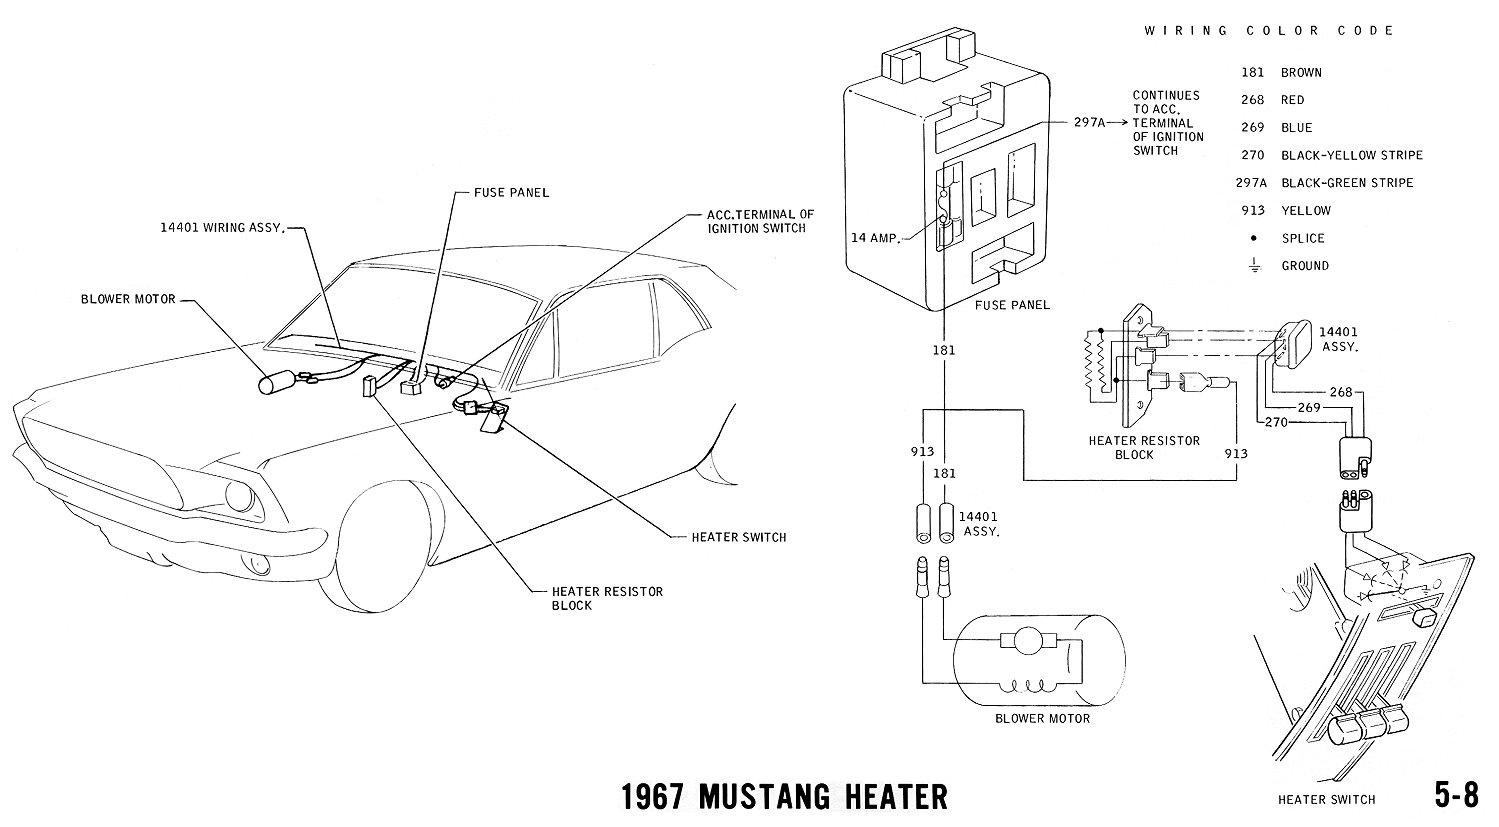 Whl moreover Maxresdefault moreover Per as well D Fastback Fog Light Wirng Kit Fog Circuit Breaker Mtg likewise Interior Lighting Etc. on 1966 mustang wiring diagram